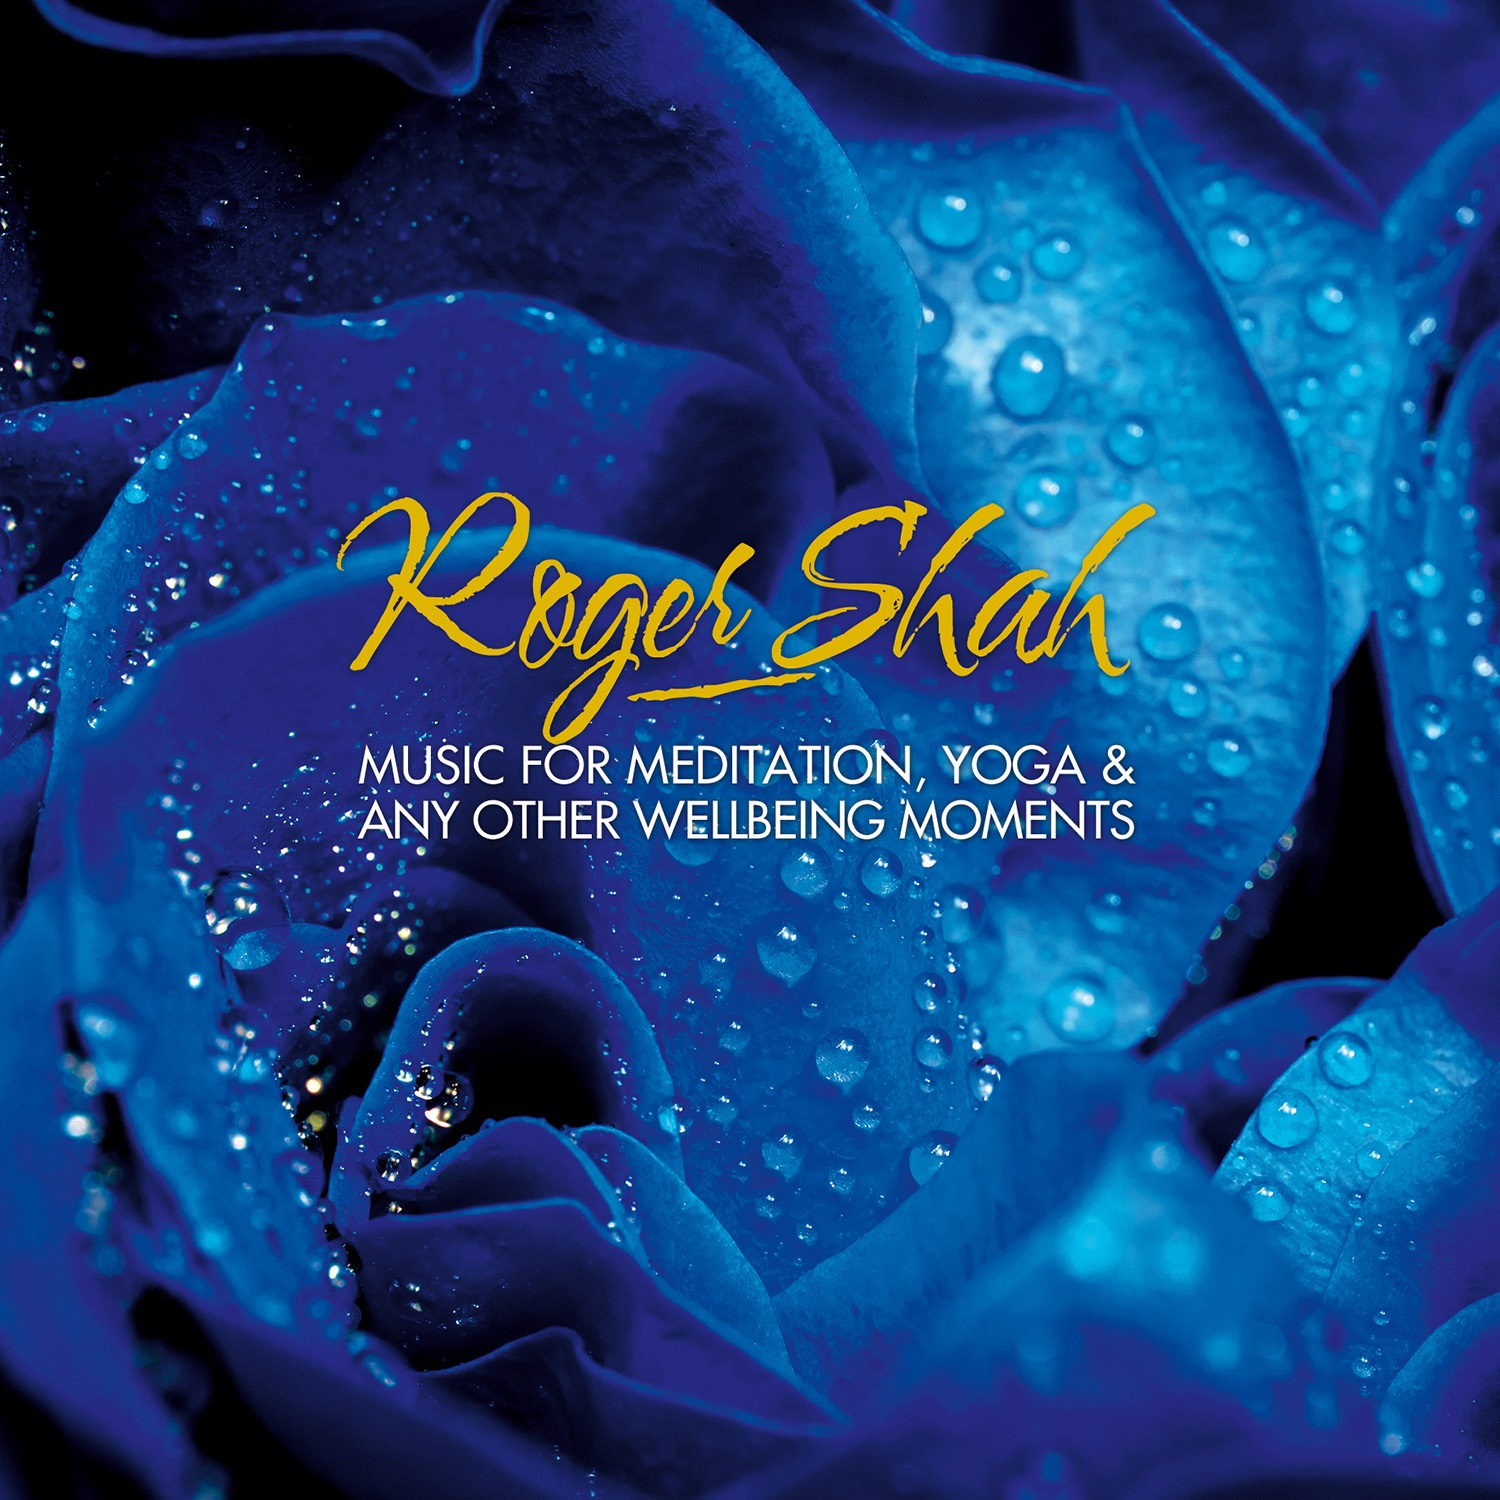 Roger Shah: Music For Meditation, Yoga & Any Other Wellbeing Moments (CD)